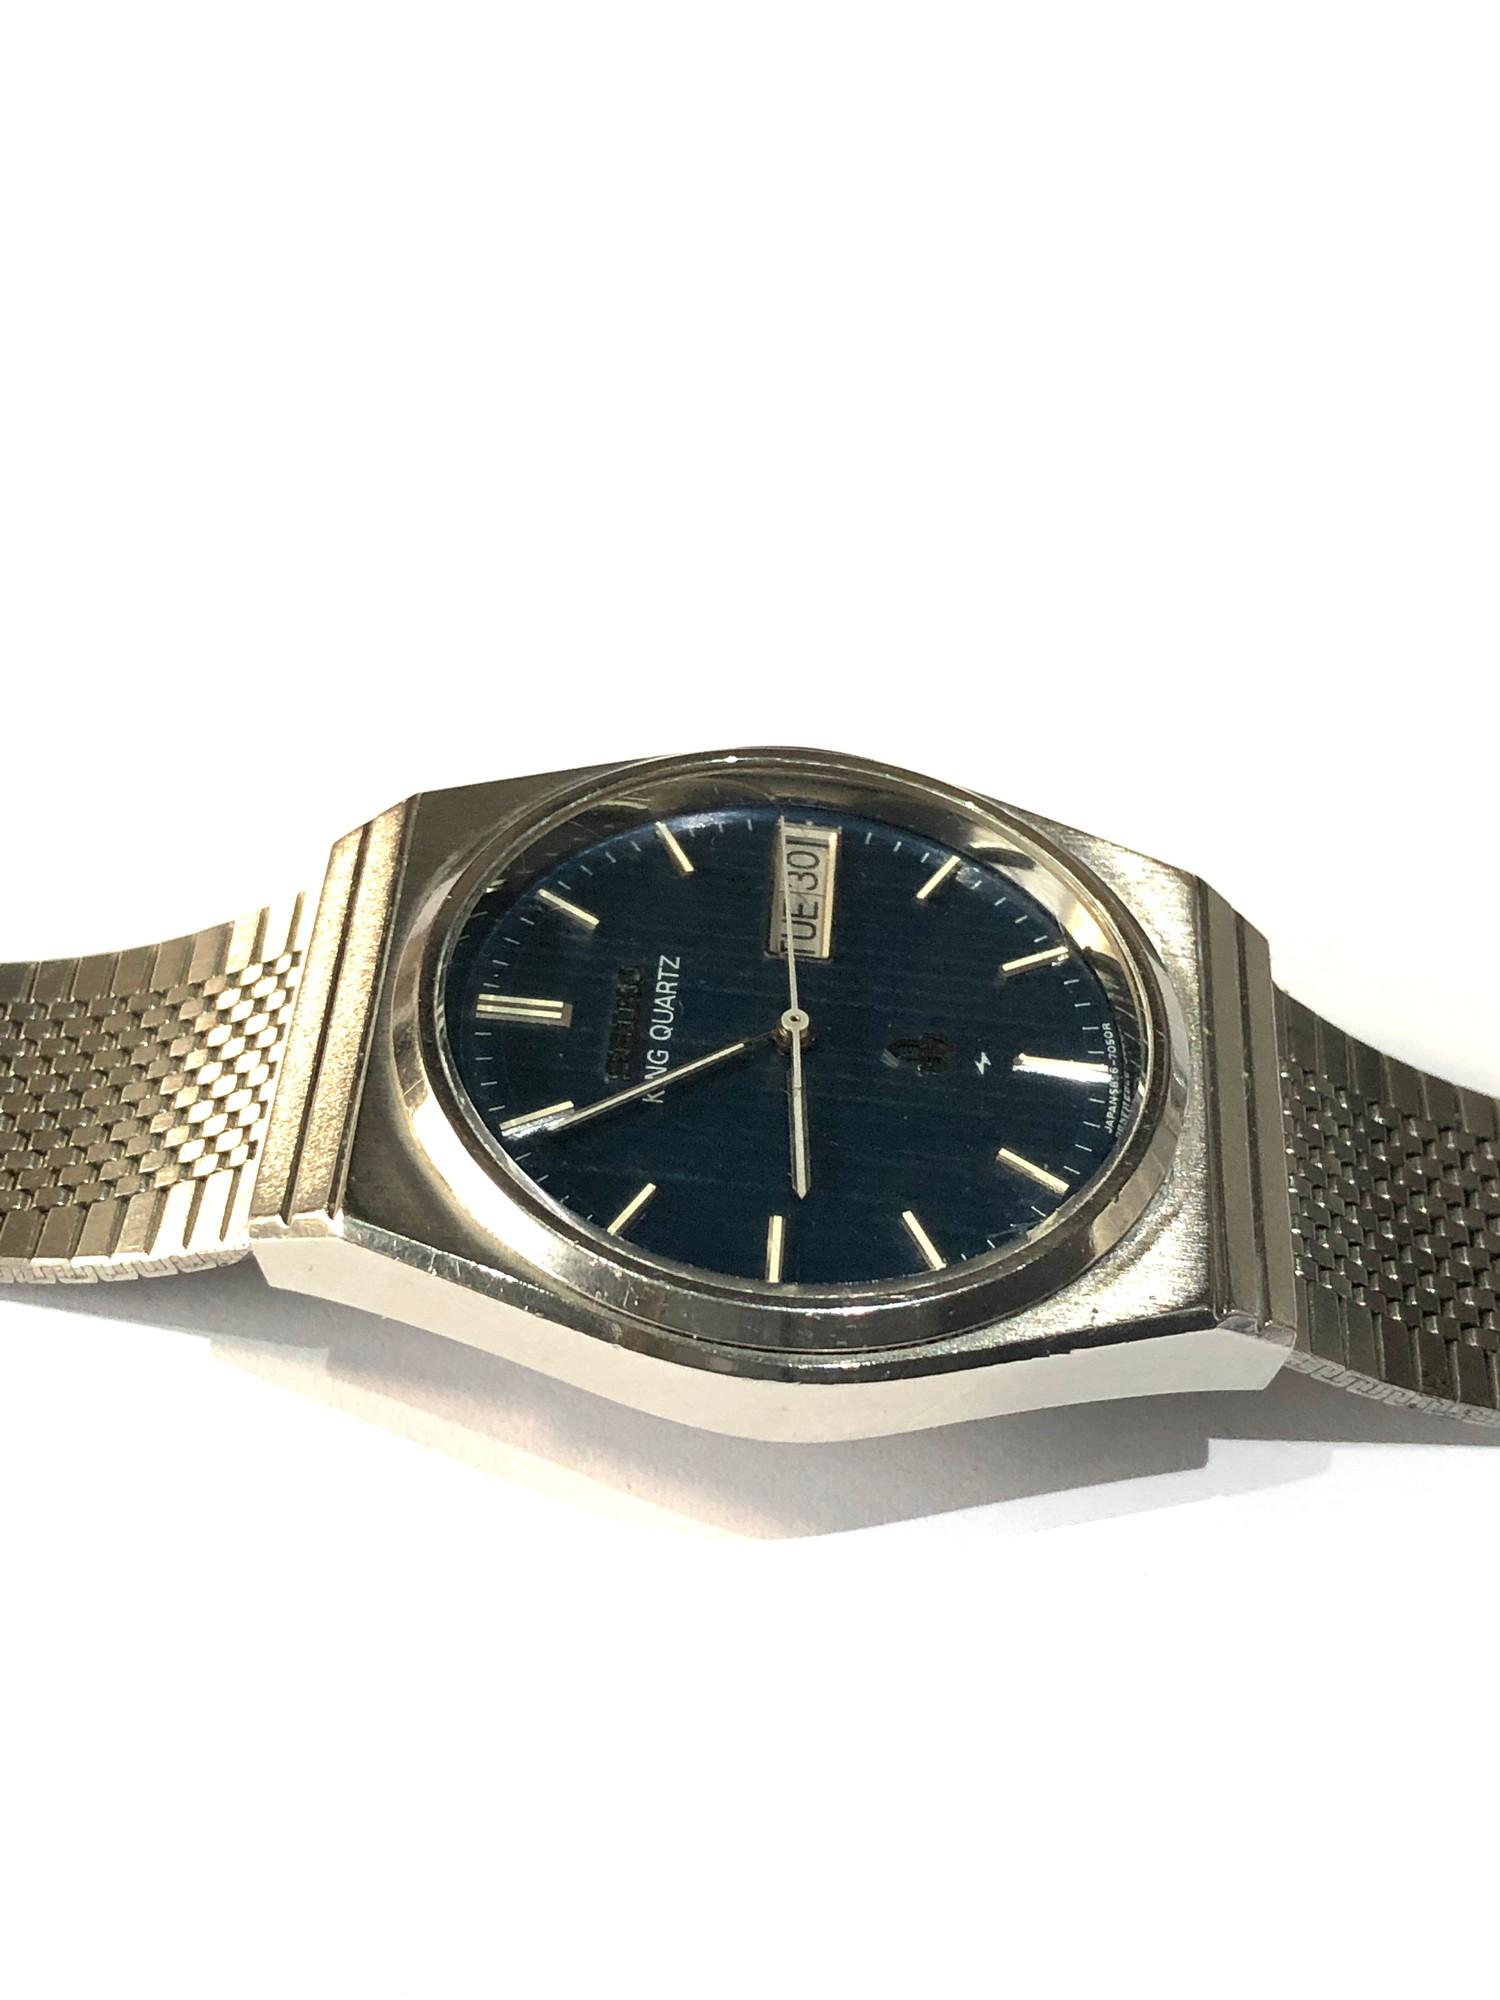 Vintage Seiko king quartz 5856-7040 watch is in working order but no warranty given - Image 3 of 5